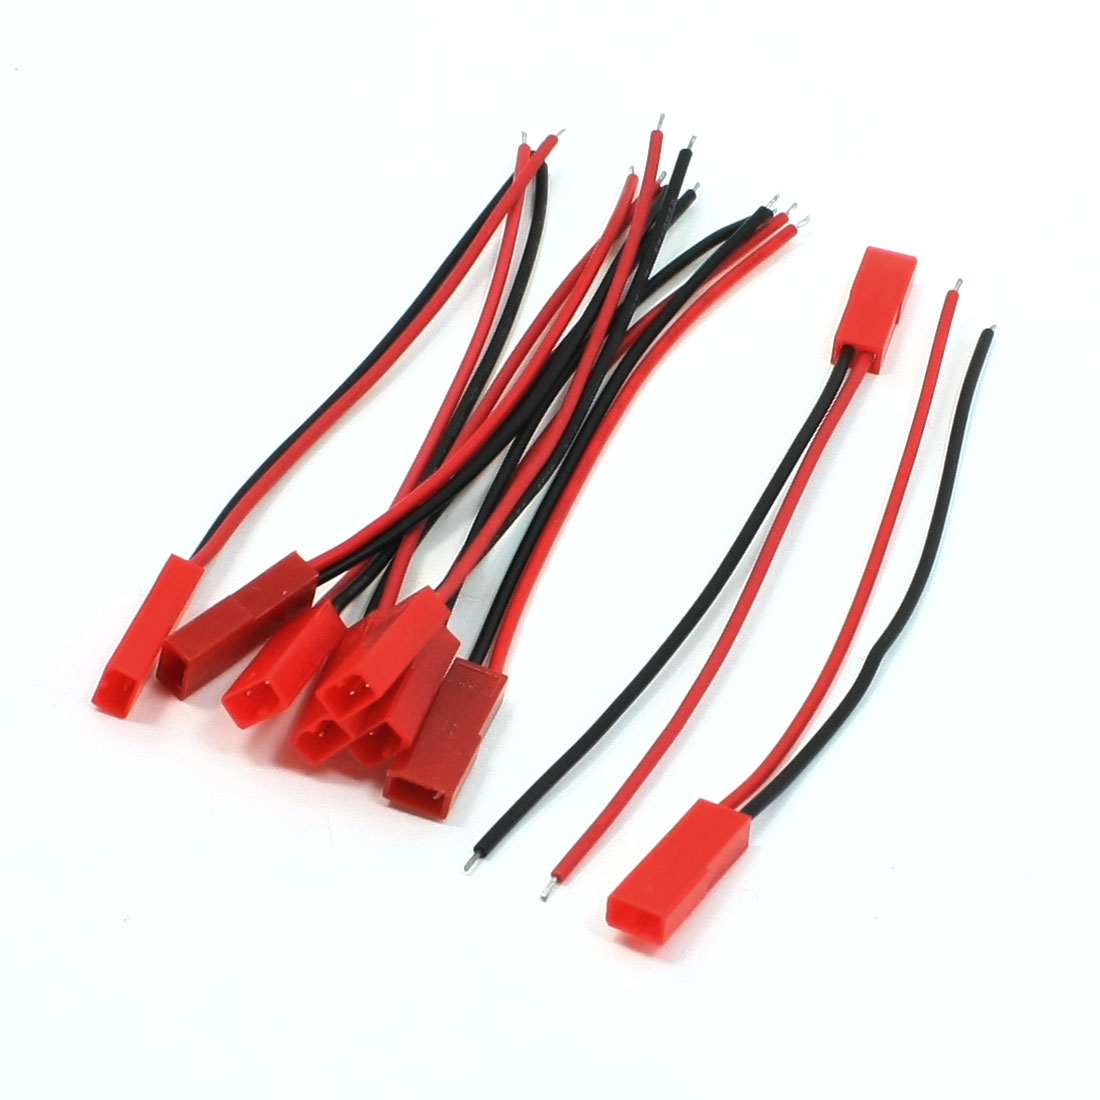 "9 x RC Cars Planes JST Female 3.9"" Length 22AWG Wire Cable"